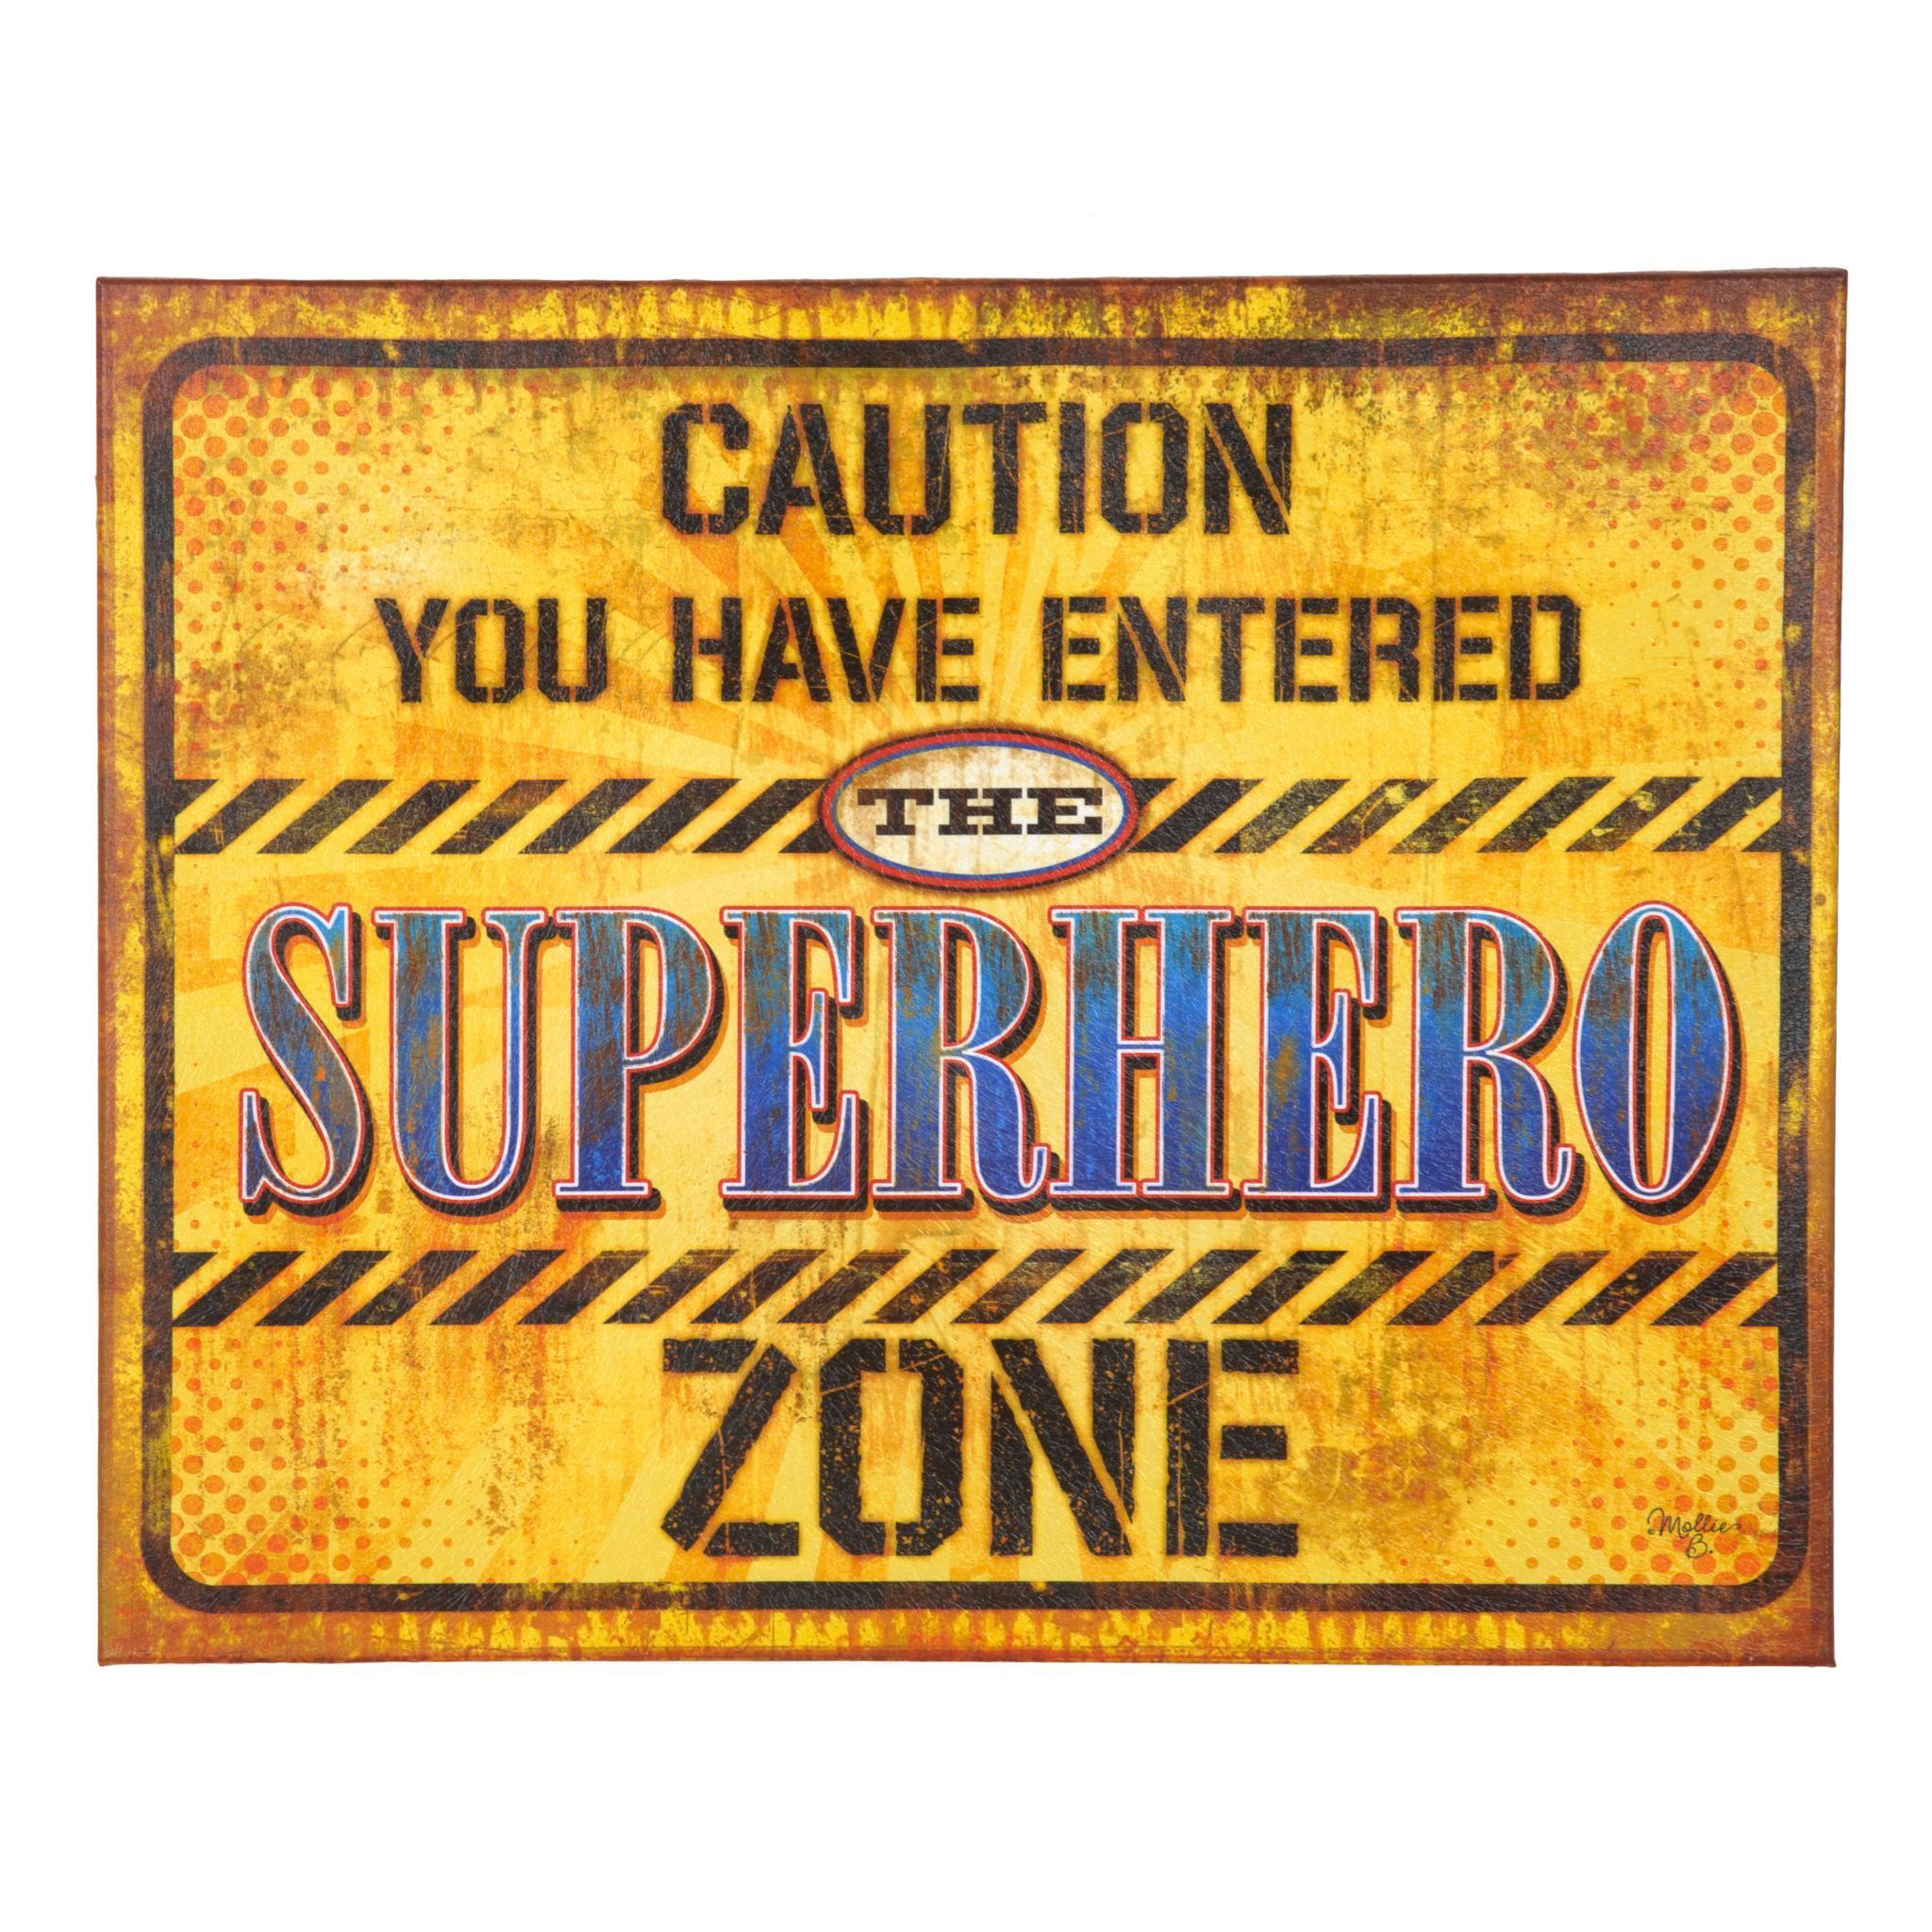 Superhero Zone Canvas Plaque | Superhero, Canvases and Cricut